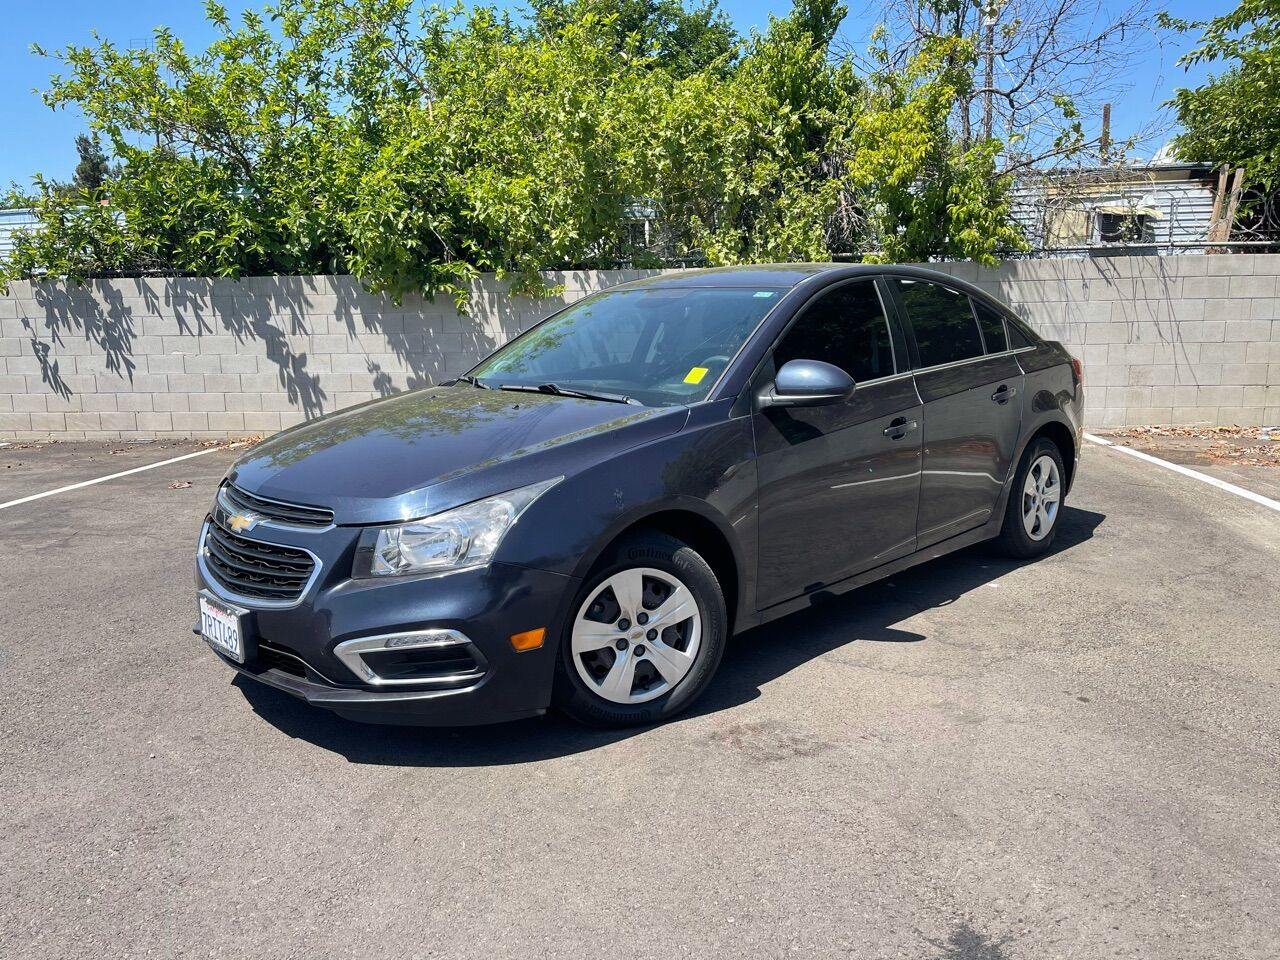 Pre-Owned 2016 Chevrolet Cruze Limited 1LT Auto 4dr Sedan w/1SD Front Wheel Drive Sedan